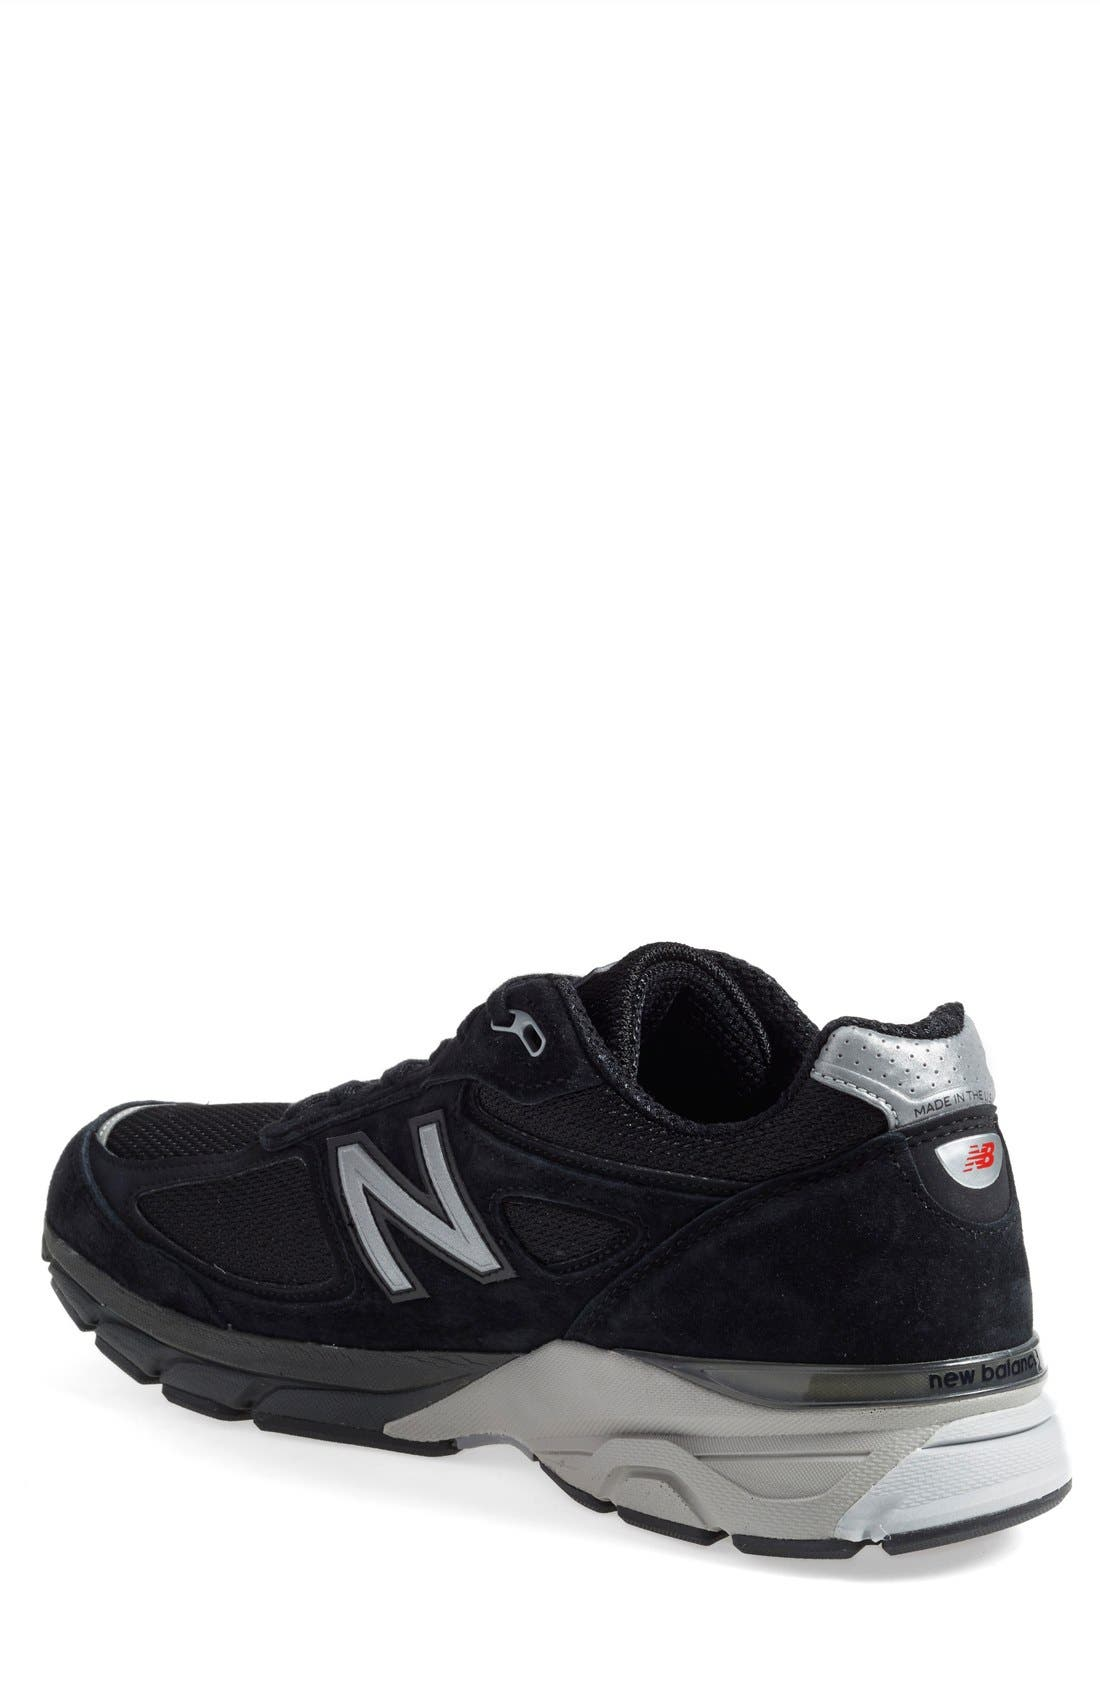 '990' Running Shoe,                             Alternate thumbnail 3, color,                             BLACK